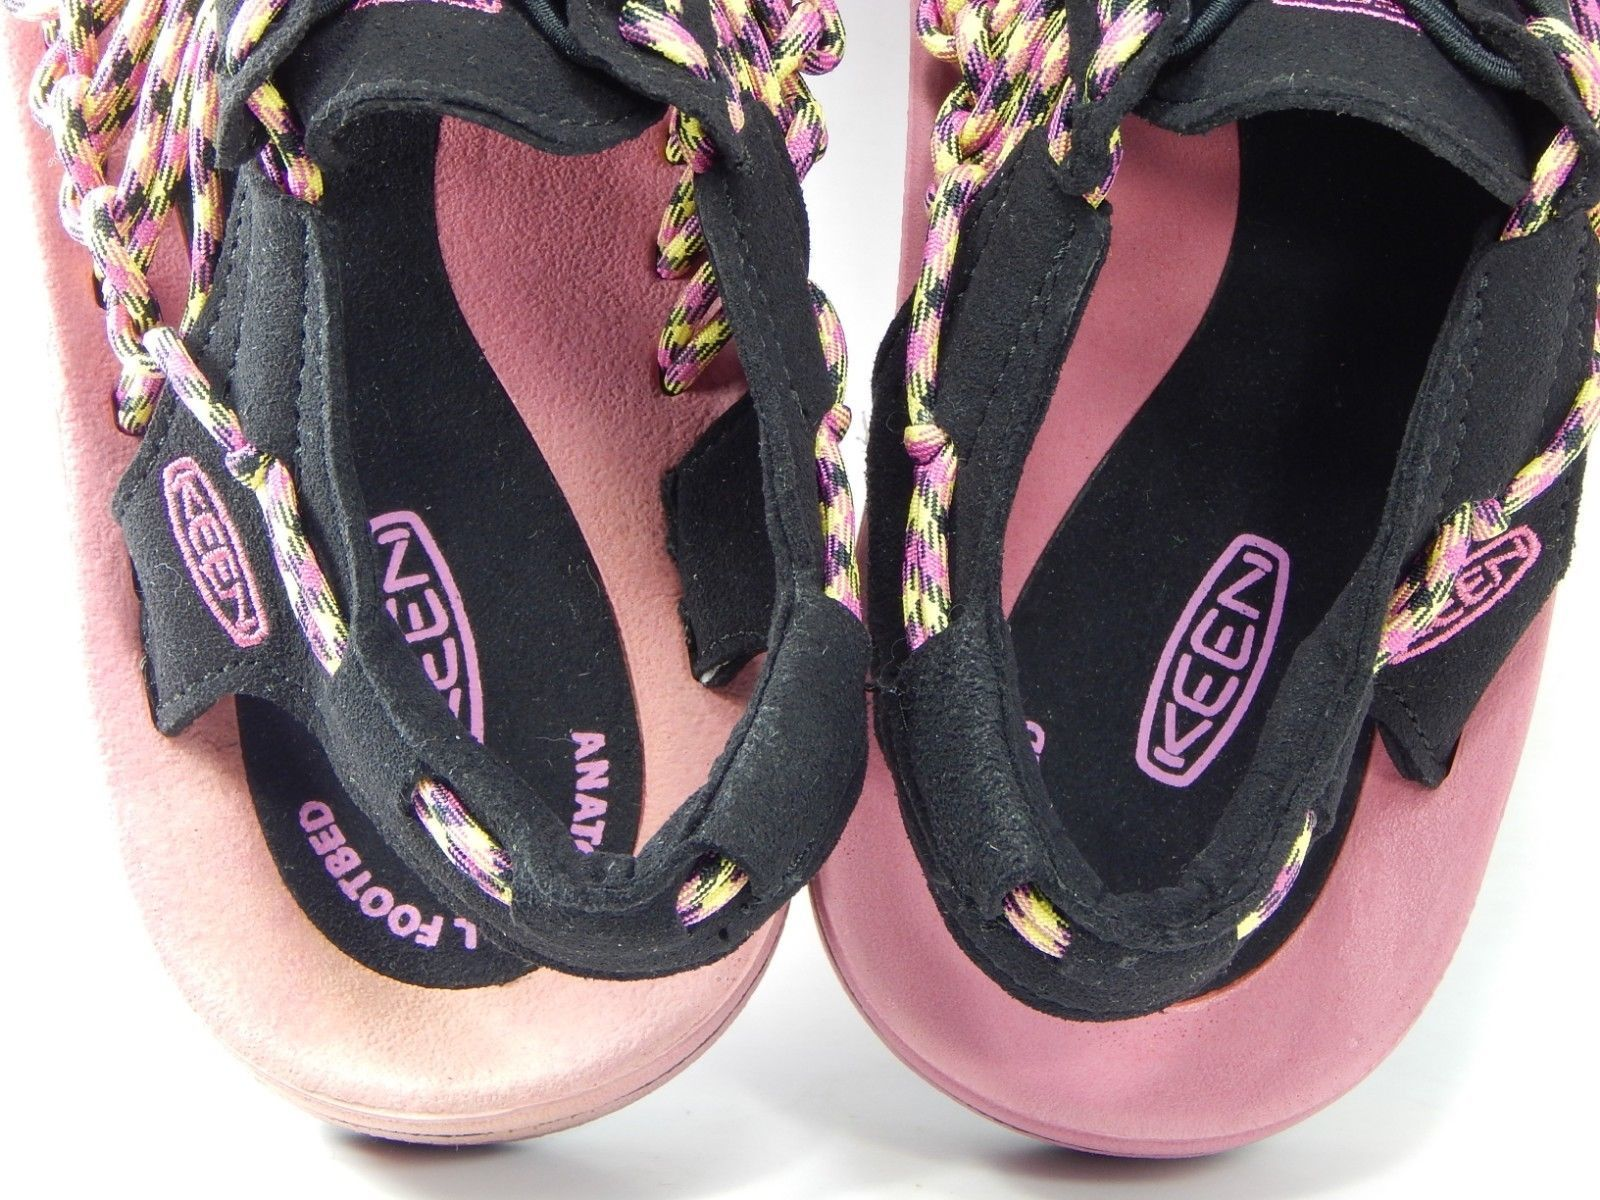 Keen Uneek Sz US 7.5 M (B) EU 38 Women's Sport Sandals Shoes Pink Dhalia 1013886